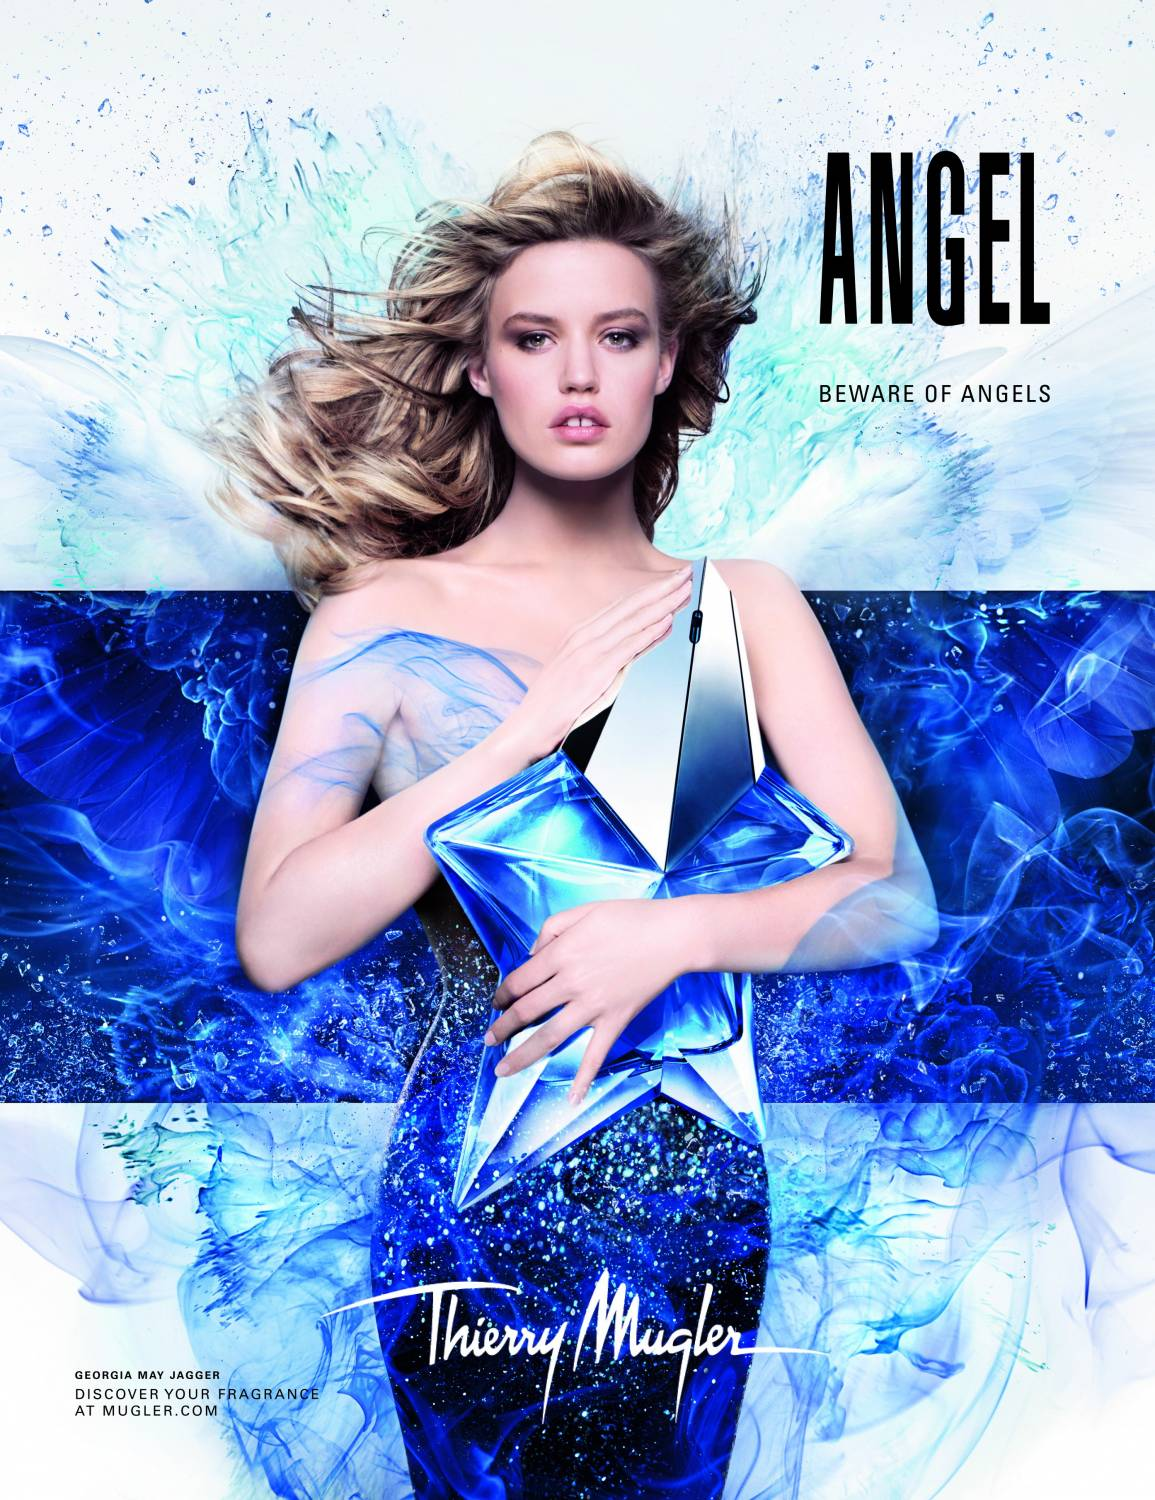 Музыка из рекламы Thierry Mugler - Angel - Beware Of Angels (Georgia May Jagger)